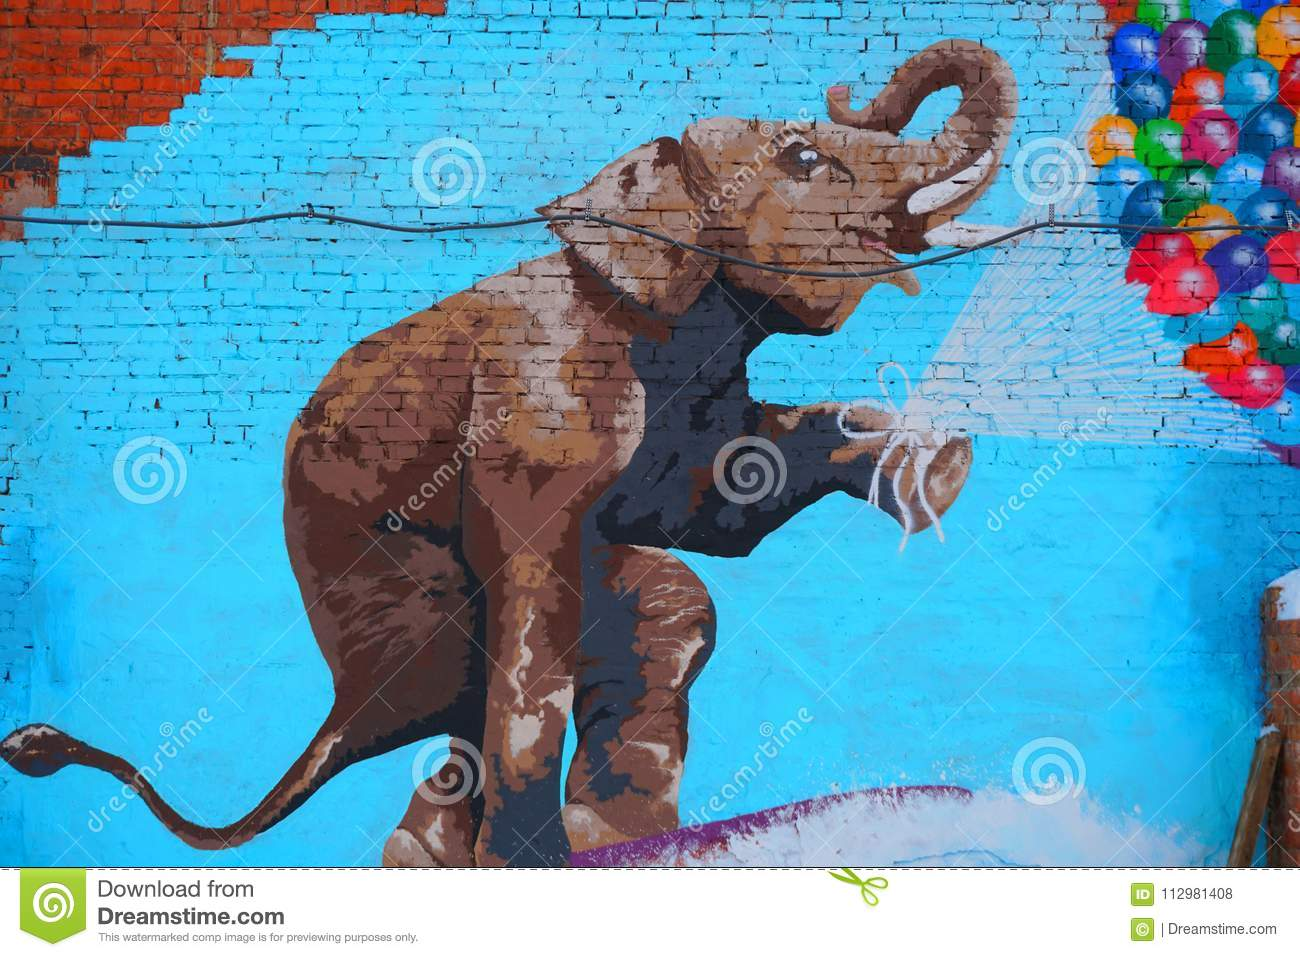 Street art of the elephant.